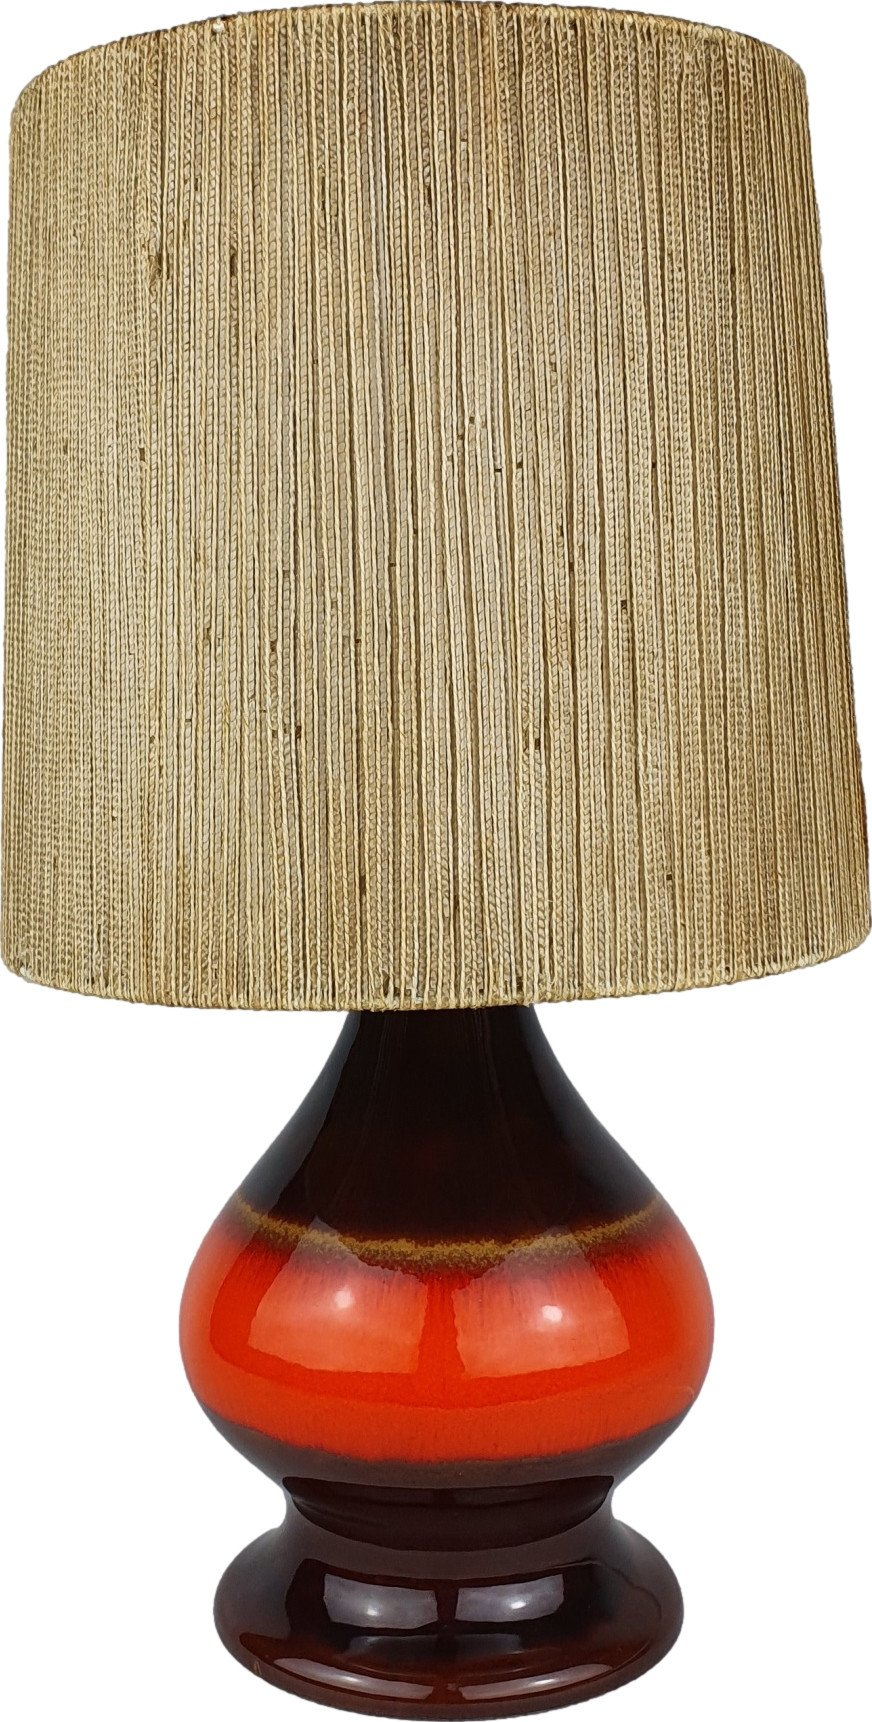 Table Lamp, Hustadt Leuchten, Germany, 1960s